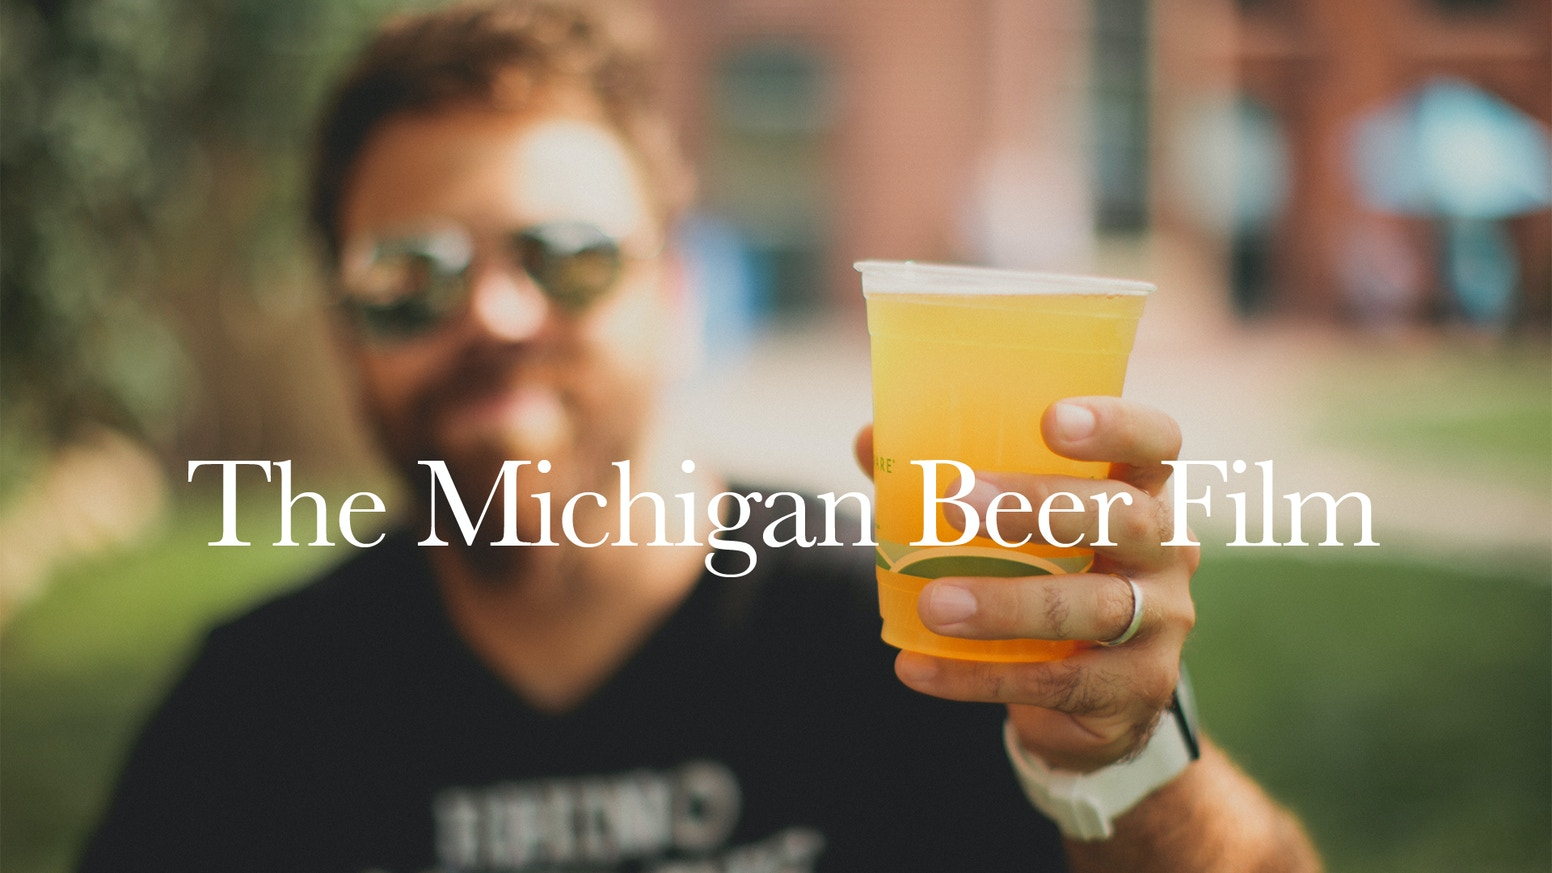 A film that explores the explosive growth, both economic and artistic, of the Michigan craft beer scene. A DSLR Documentary.